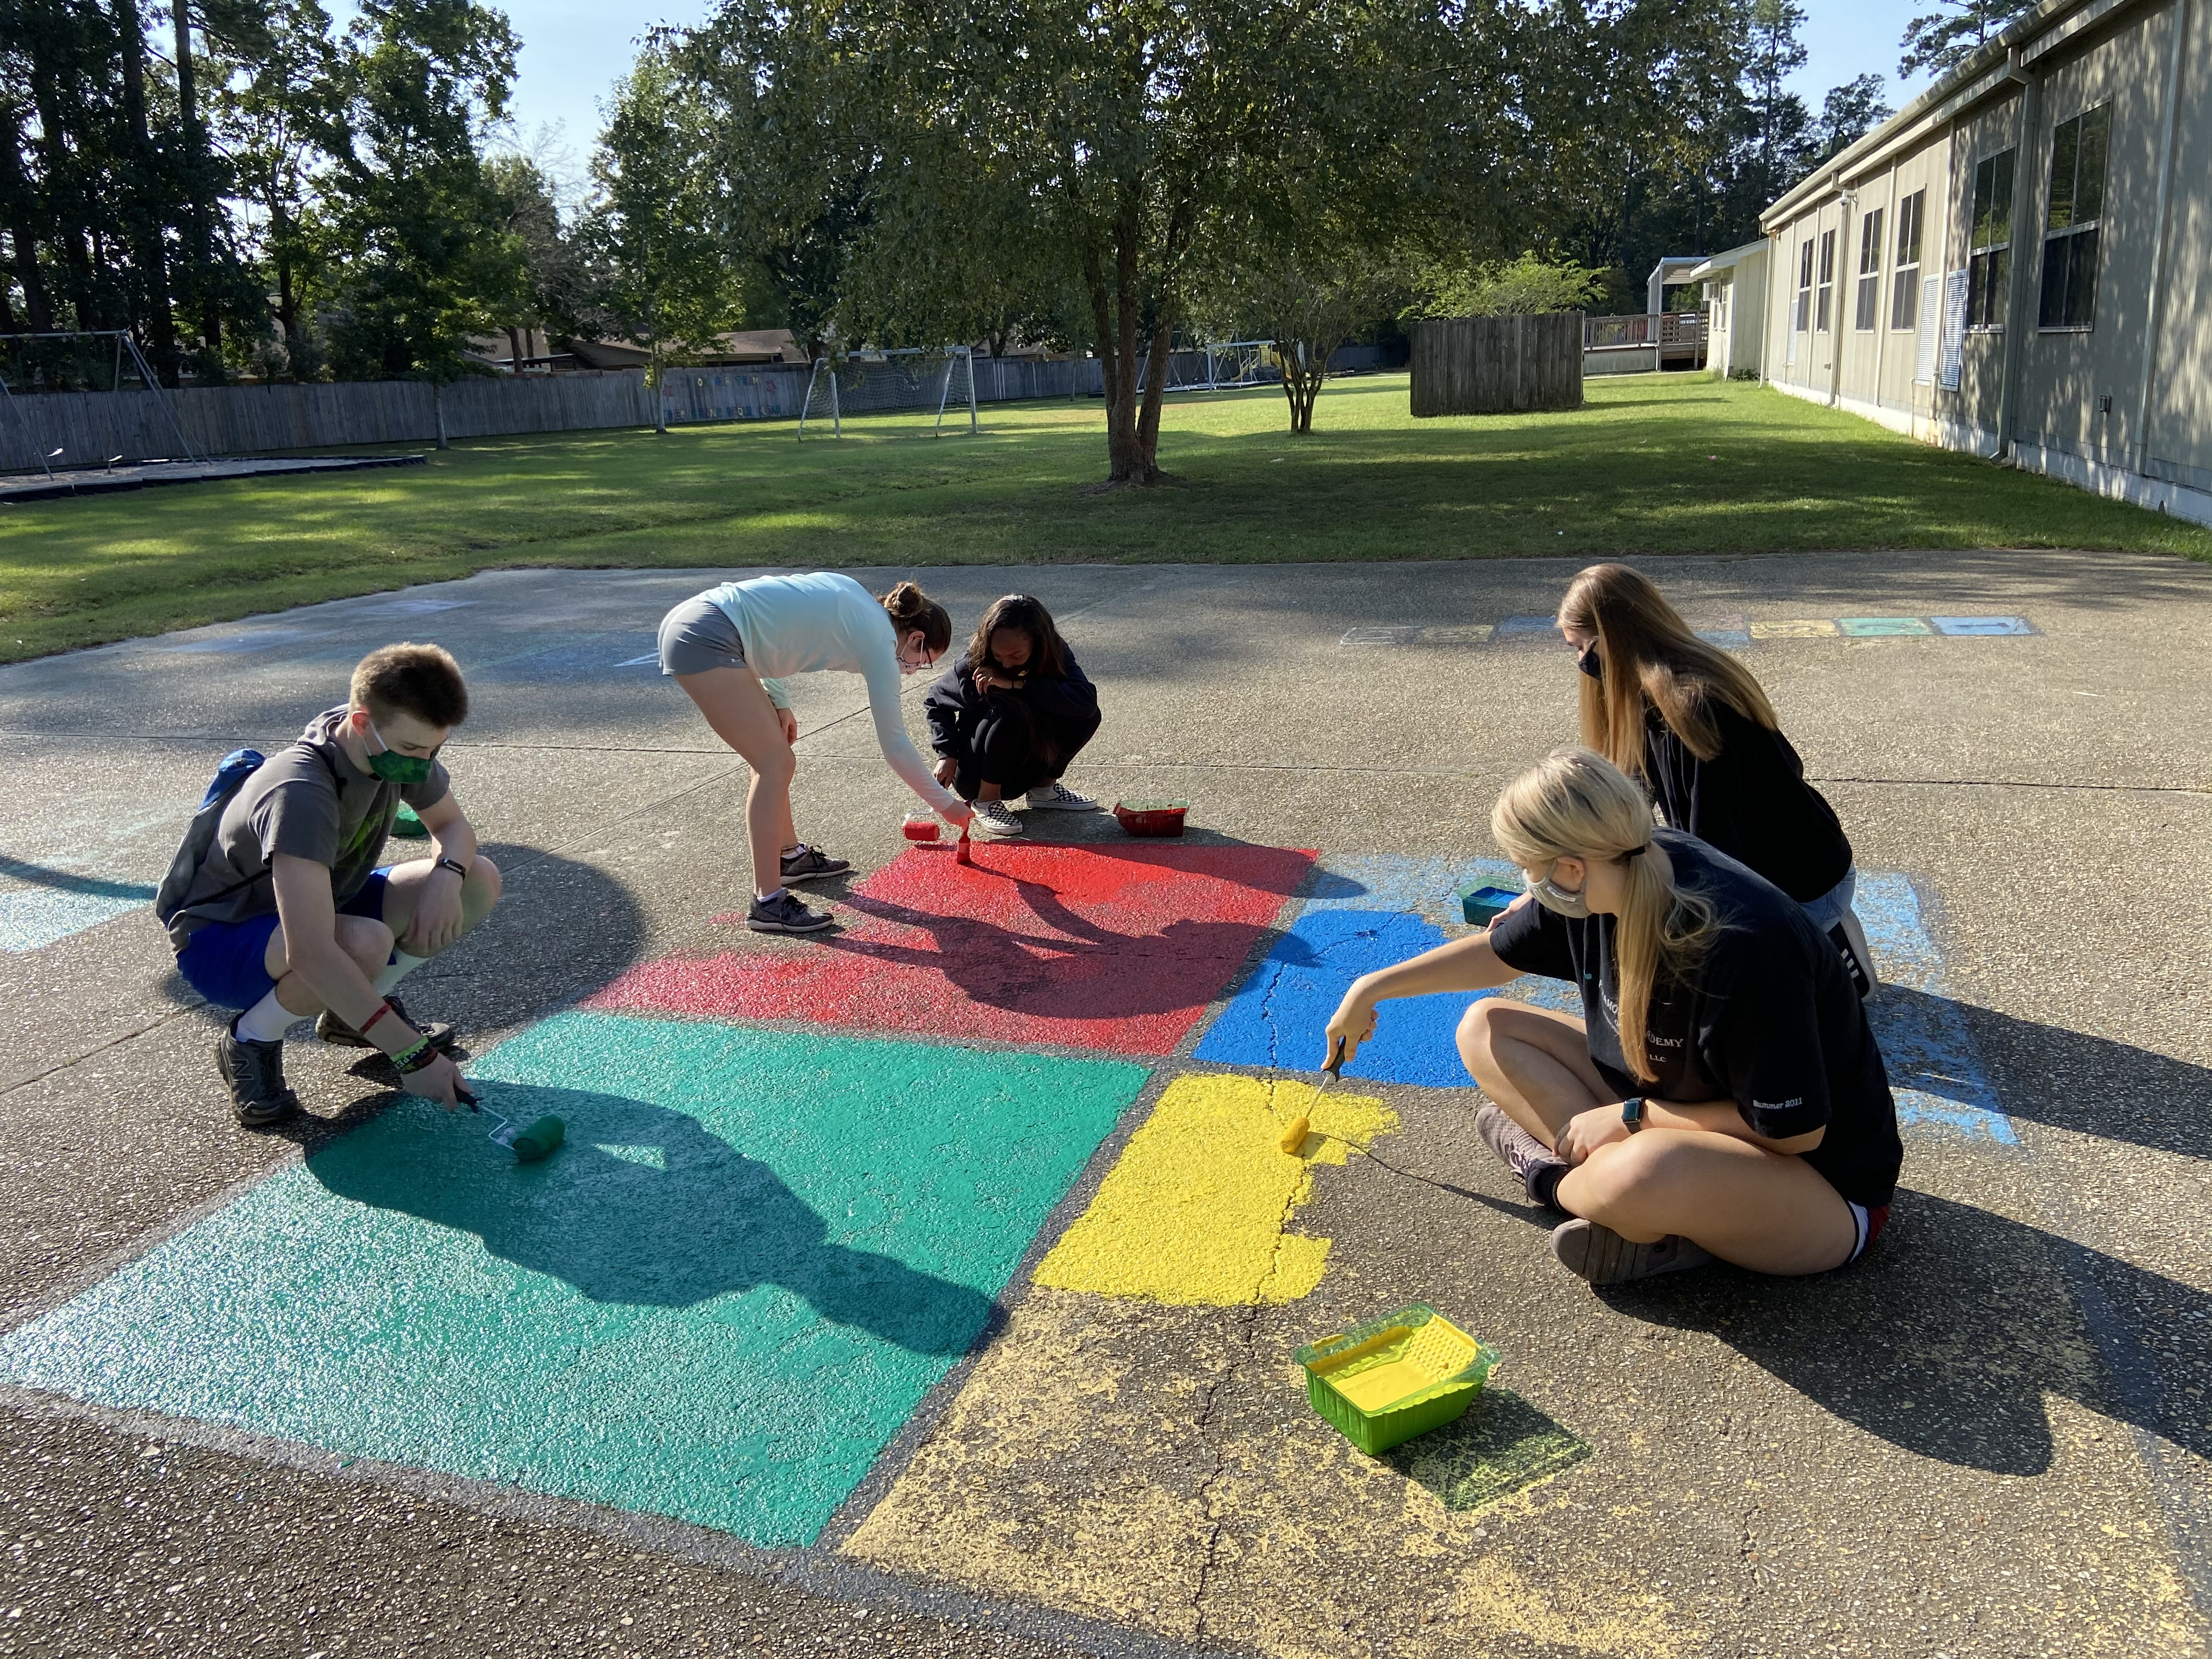 SHS National Honor Society provides community service at Bonne Ecole Elementary